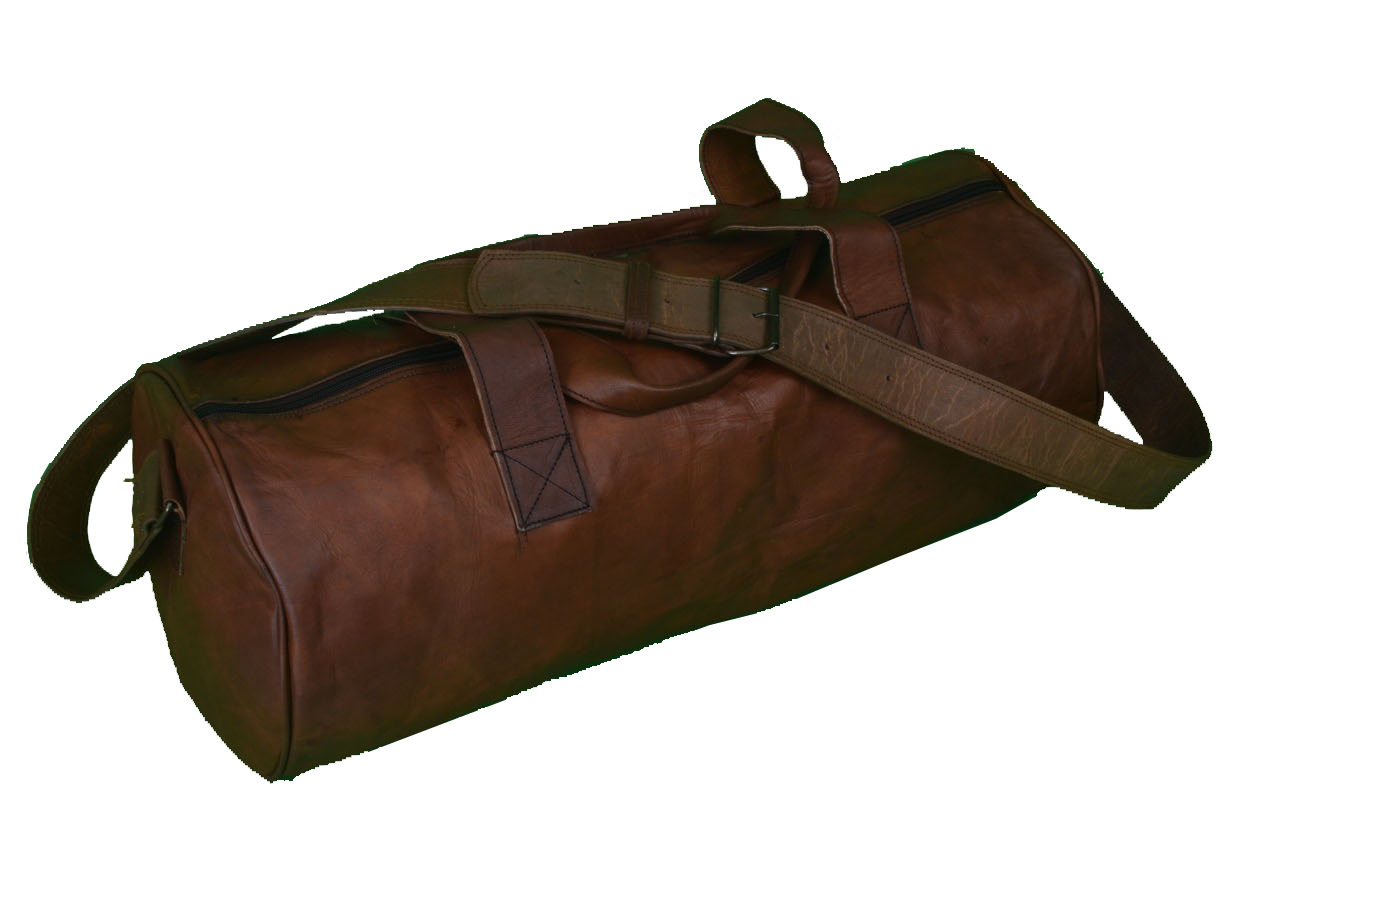 Distressed 28 Round Leather Overnight Bag Weekend Travel Duffle Holidaly Cabin Gym